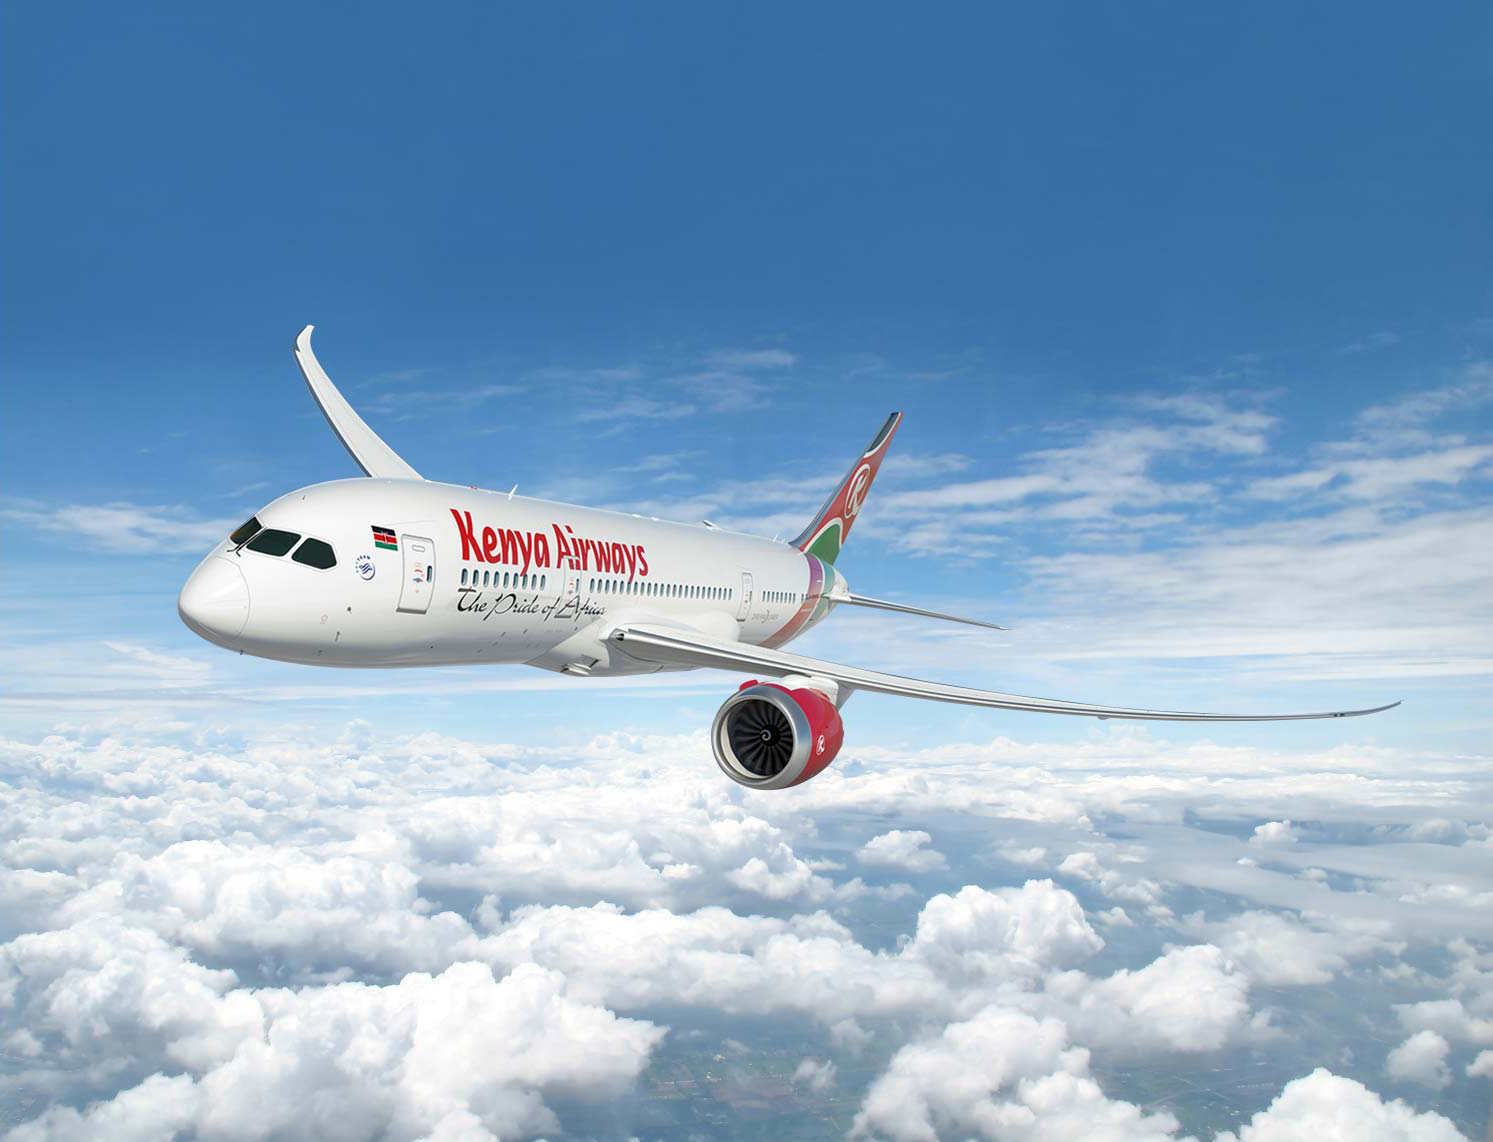 kenya airways airplane above clouds